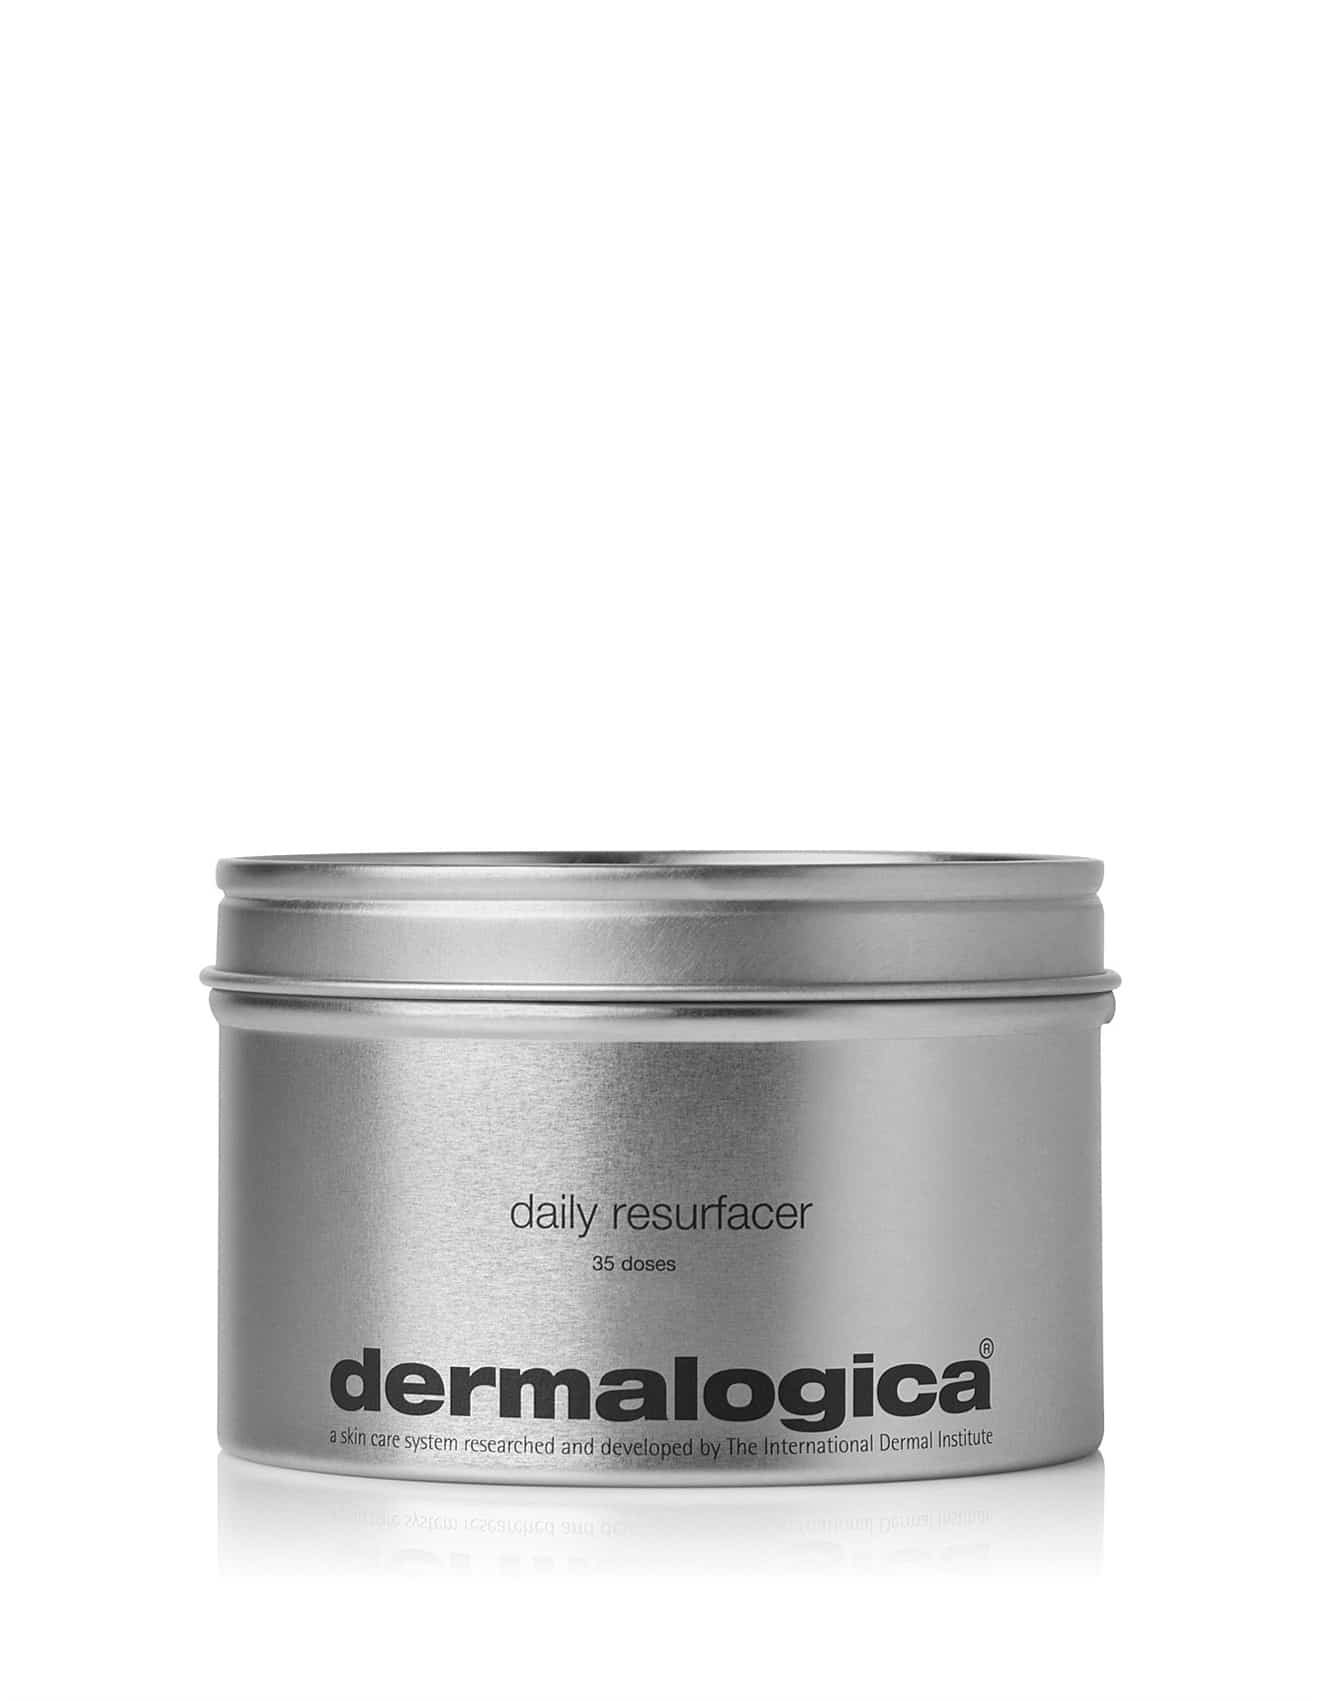 Dermalogica Daily Resurfacer 35 pouches kabuki hair